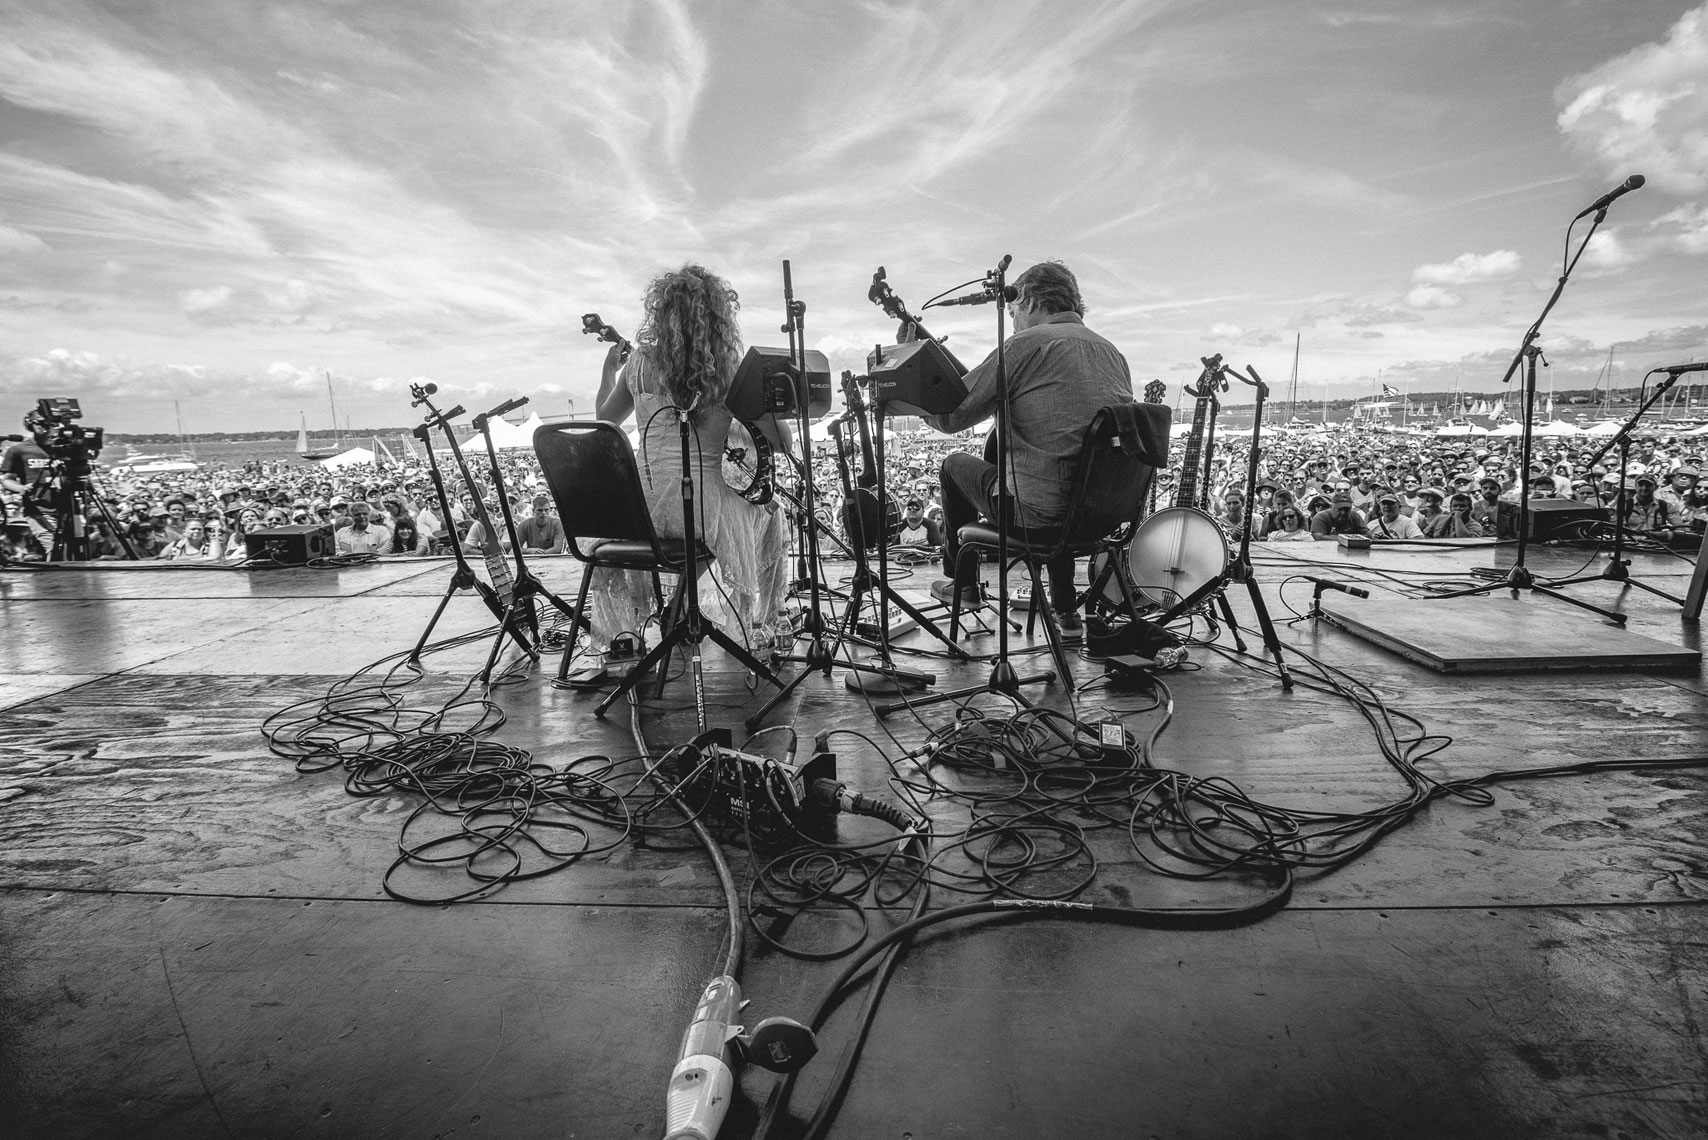 Bela Fleck and Abigail Washburn at Newport Folk Festival